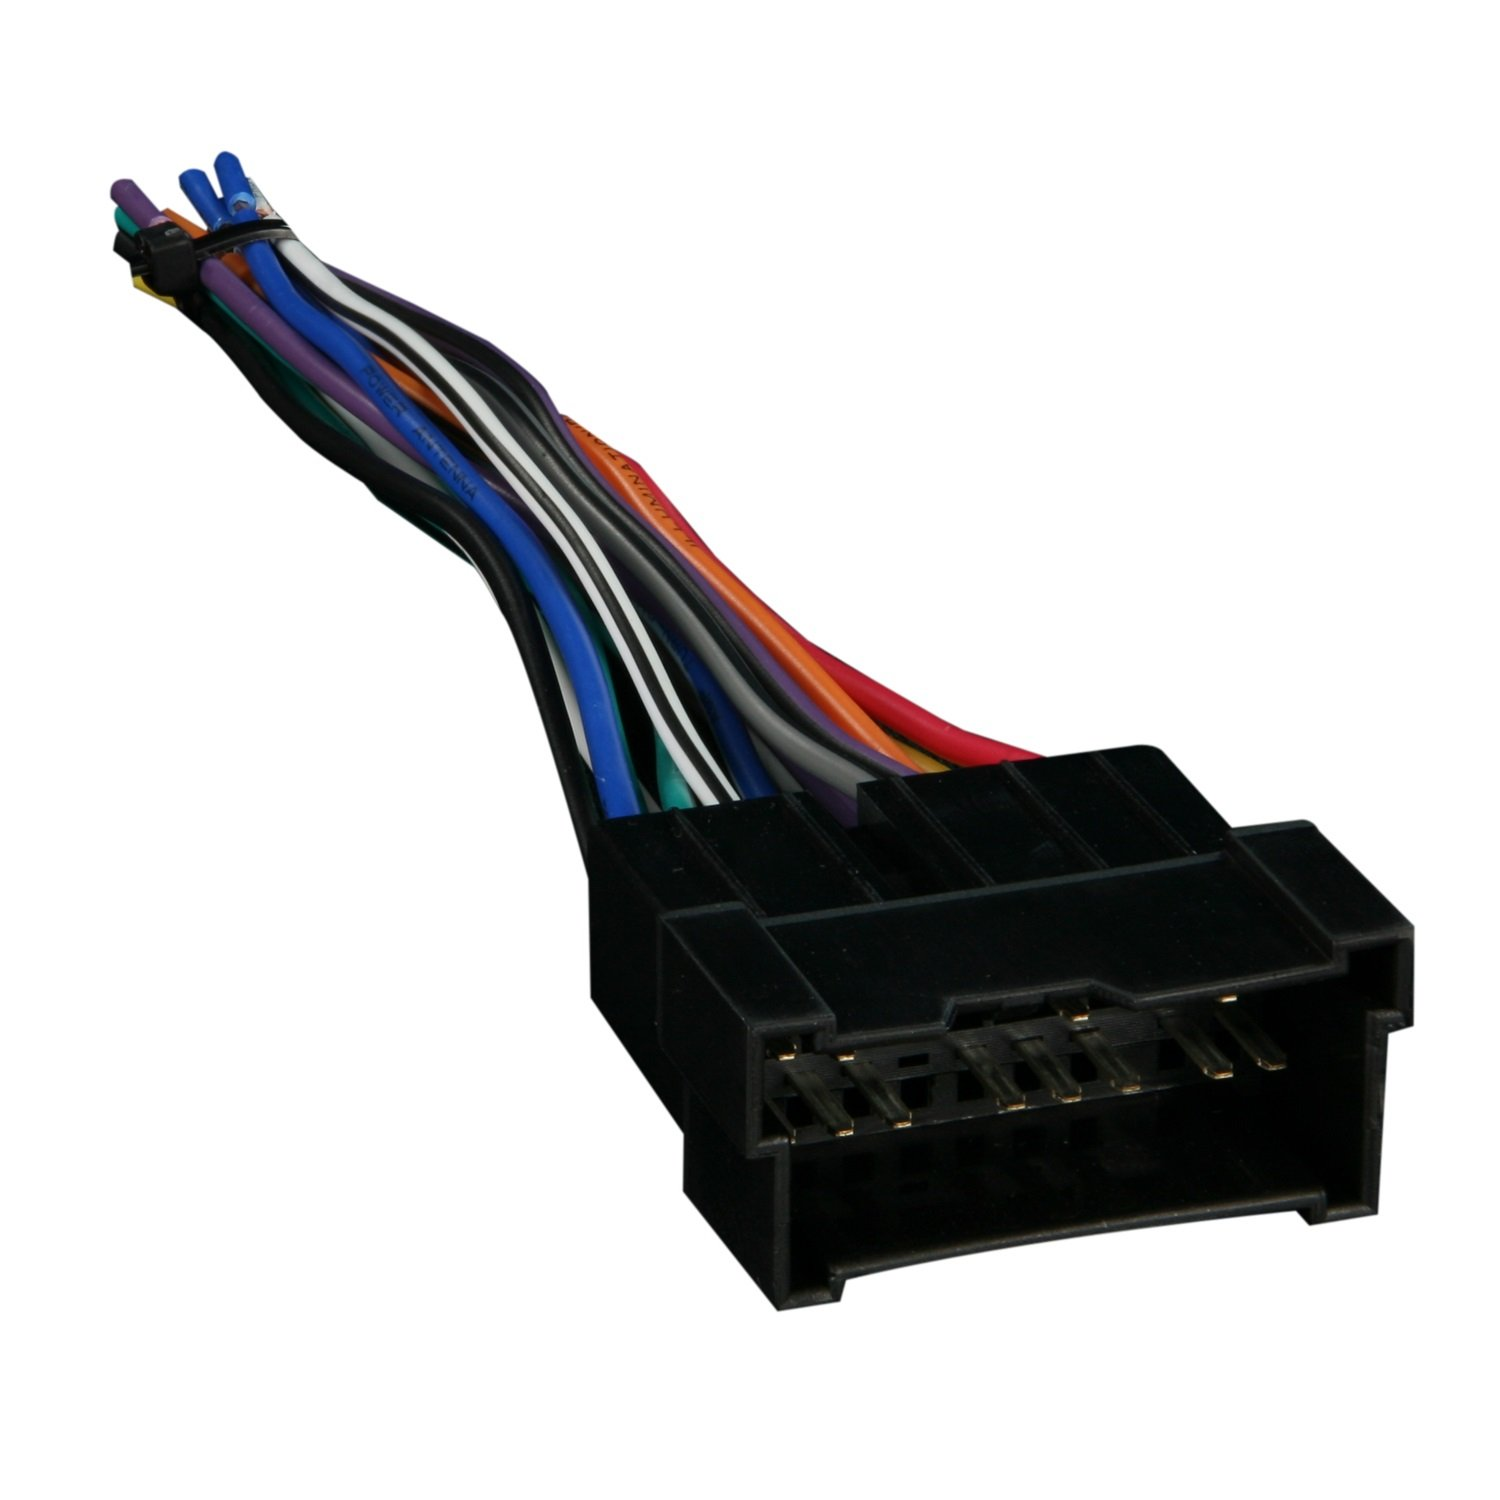 617yeBmOquL._SL1500_ amazon com metra 70 7301 radio wiring harness for hyundai kia 99 jvc wiring harness color coating at edmiracle.co